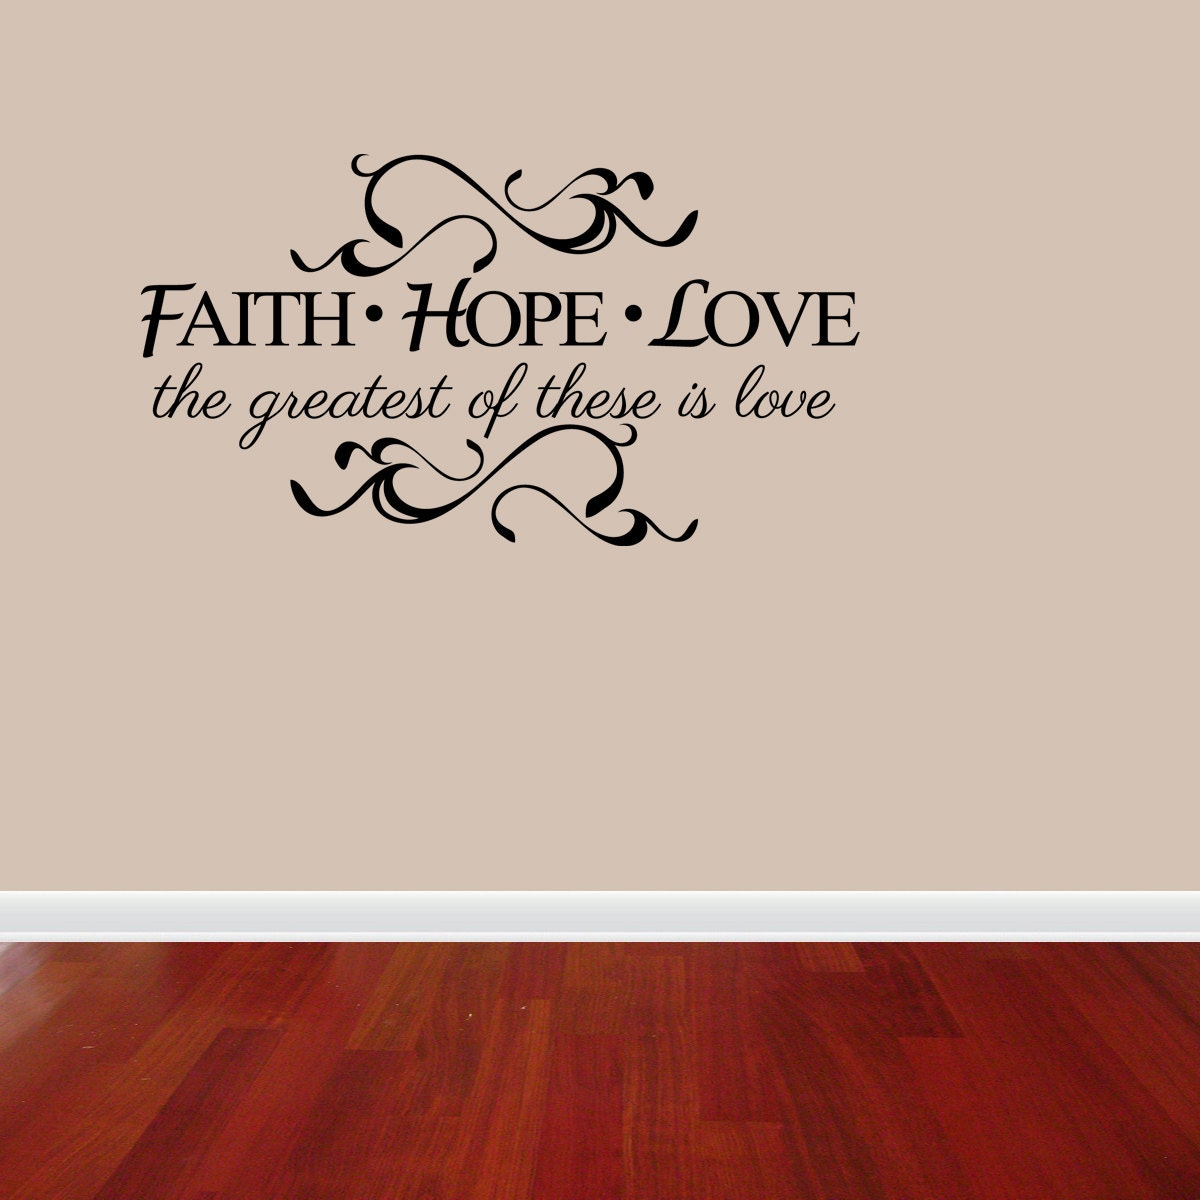 hope and faith Lyrics to faith, hope and love song by mark schultz: a chapter done turn the page and separate roads lead separate ways but as we go, we're not alone.